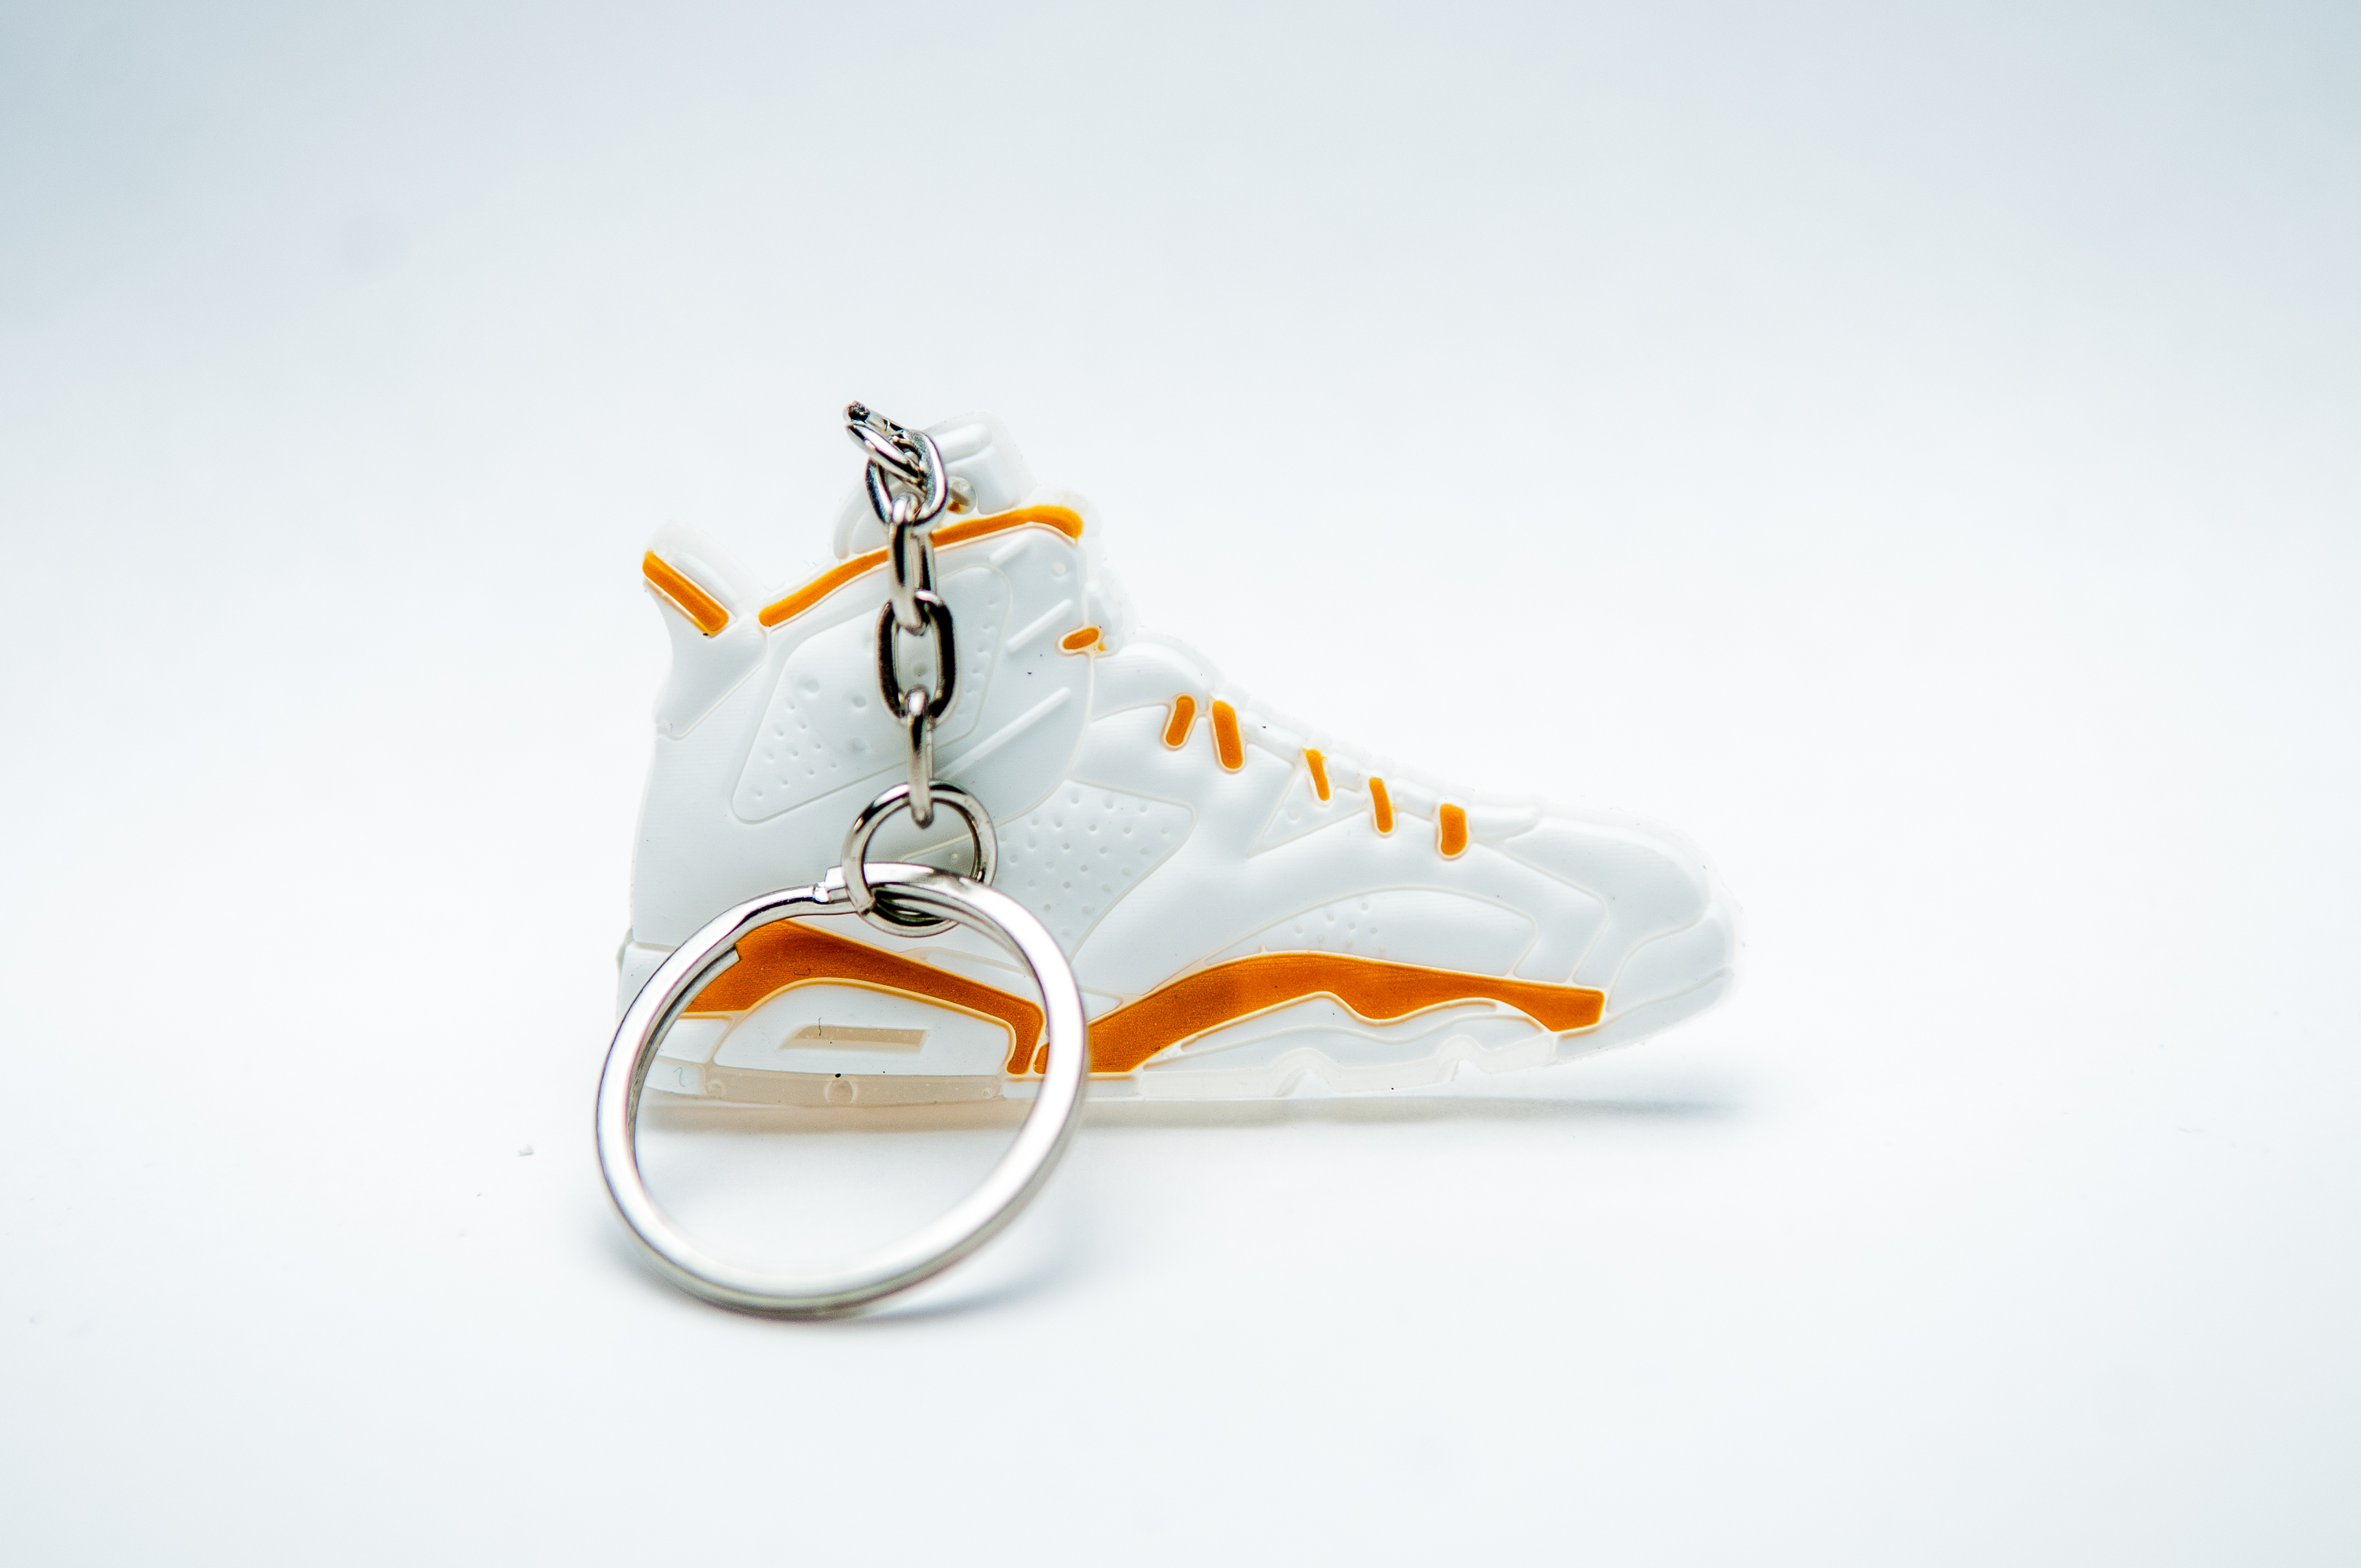 separation shoes f5873 75bd9 Nike Air Jordan 6 olympic Retro 6 Shoes White/Gold - Kool Keyrings